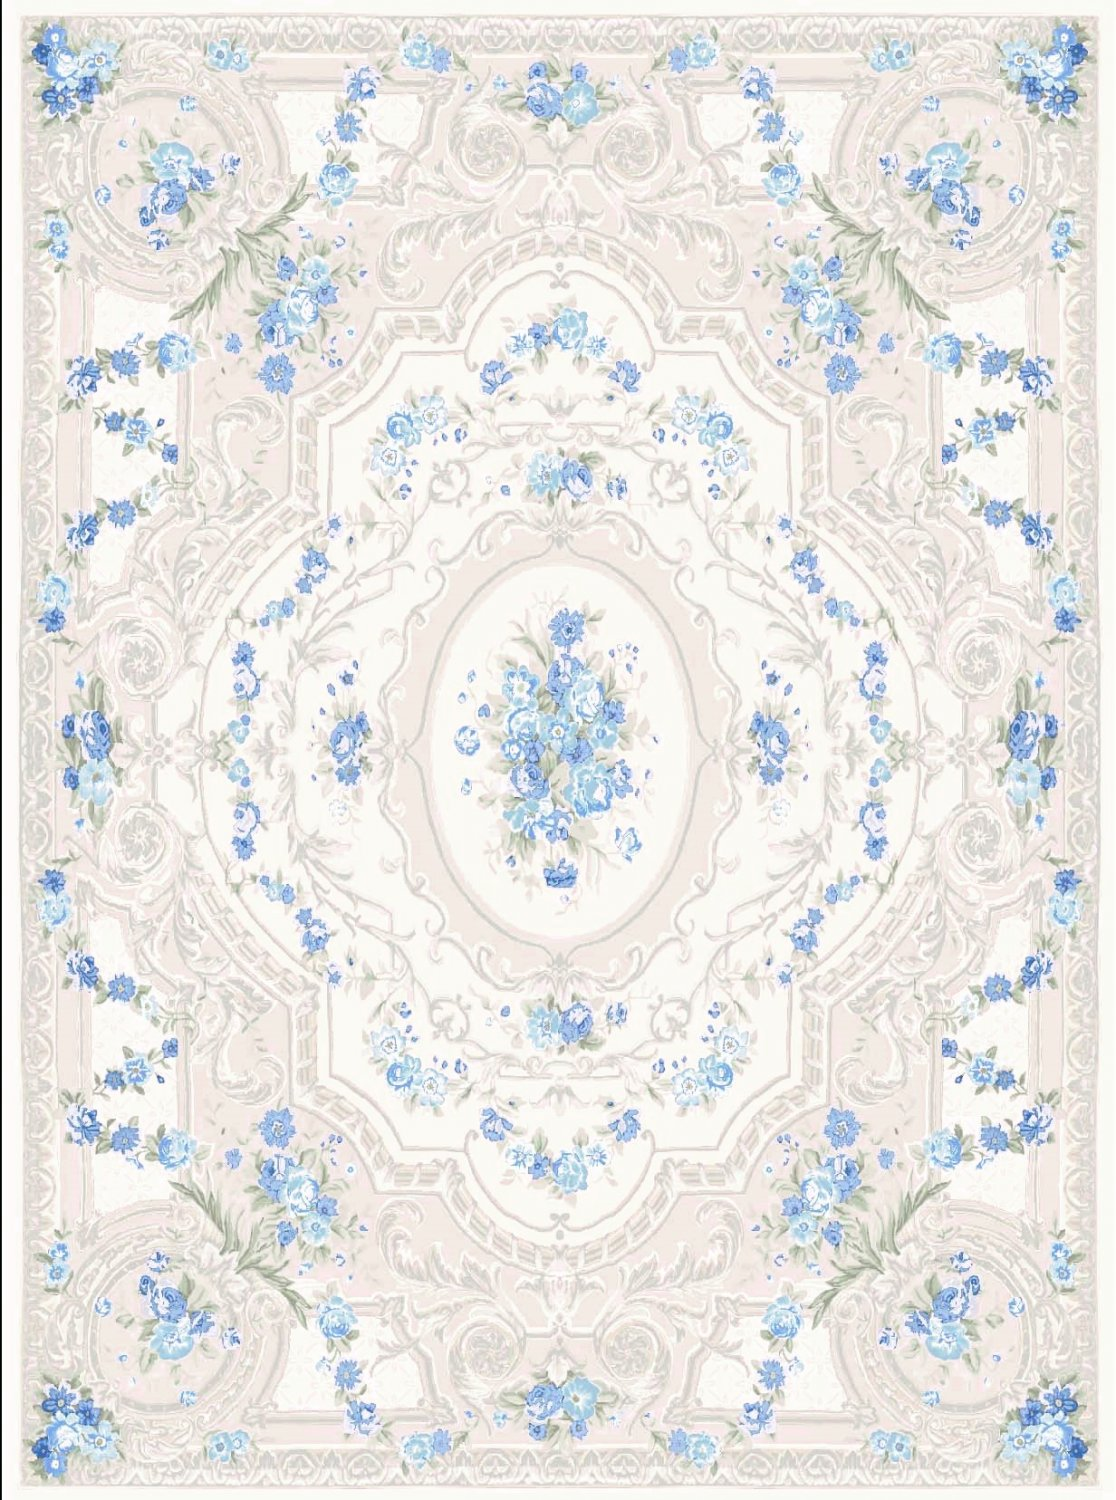 Wilton rug - Estaing (blue)